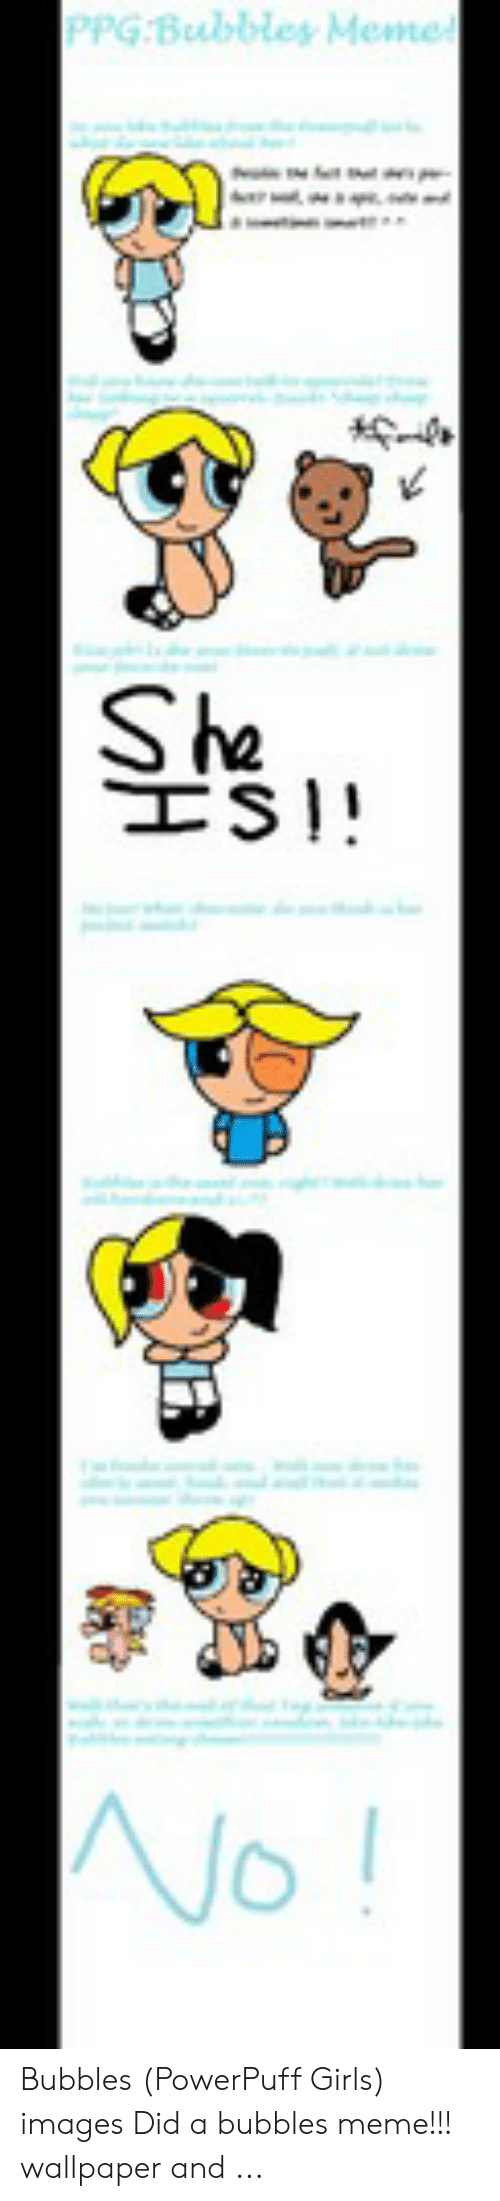 Girls, Meme, and Images: PPG Bubbley Meme Sha TS 0 Bubbles (PowerPuff